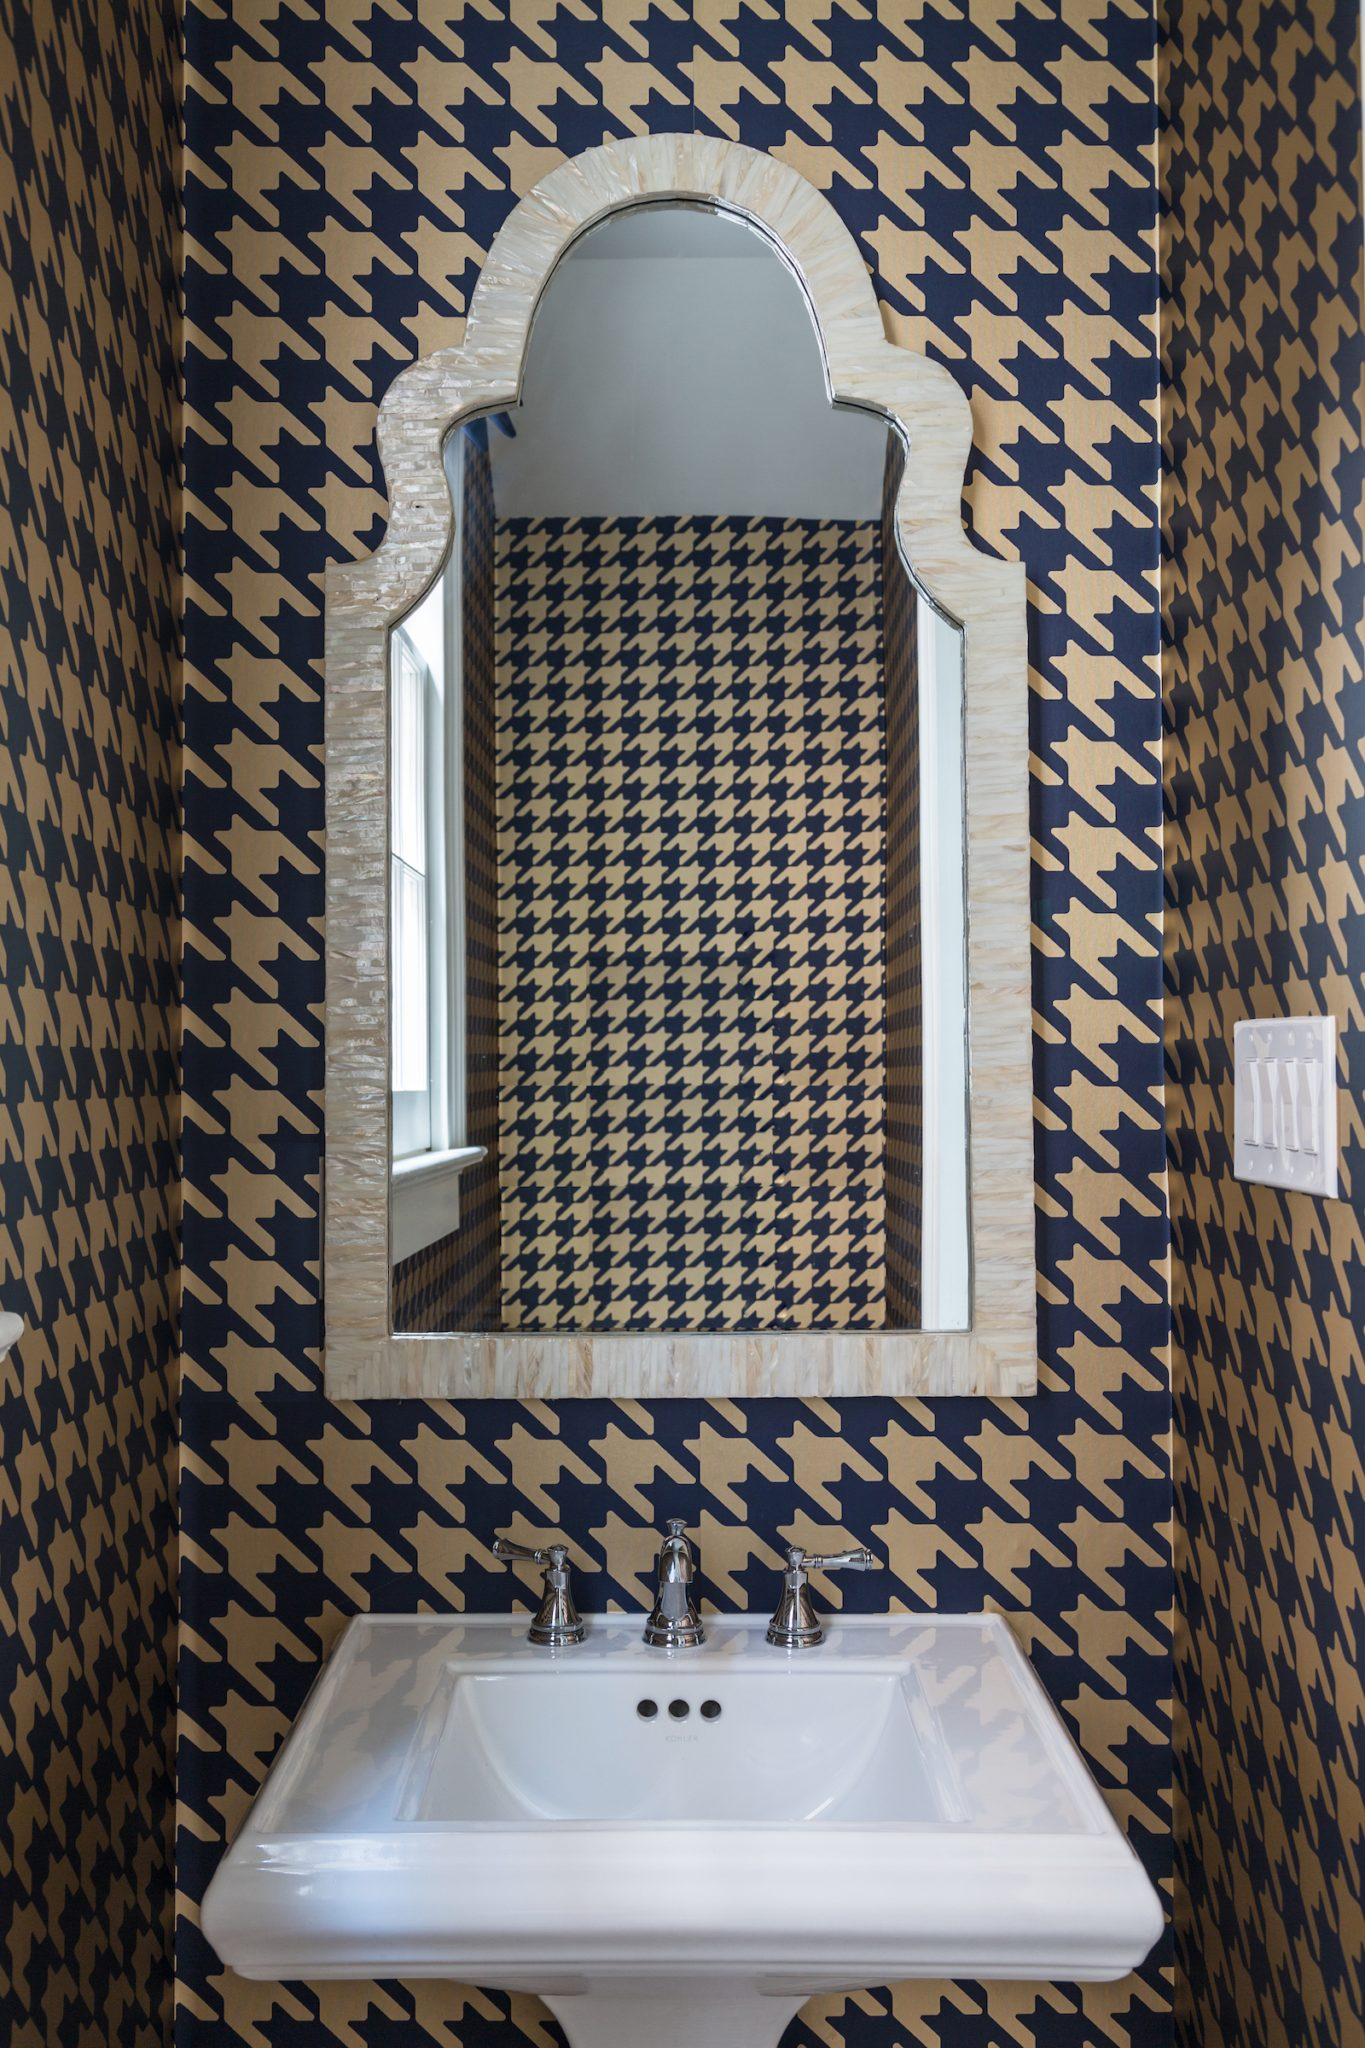 Uptown New Orleans powder room in vinyl houndstooth wallpaper, gold and blue by Eclectic Home